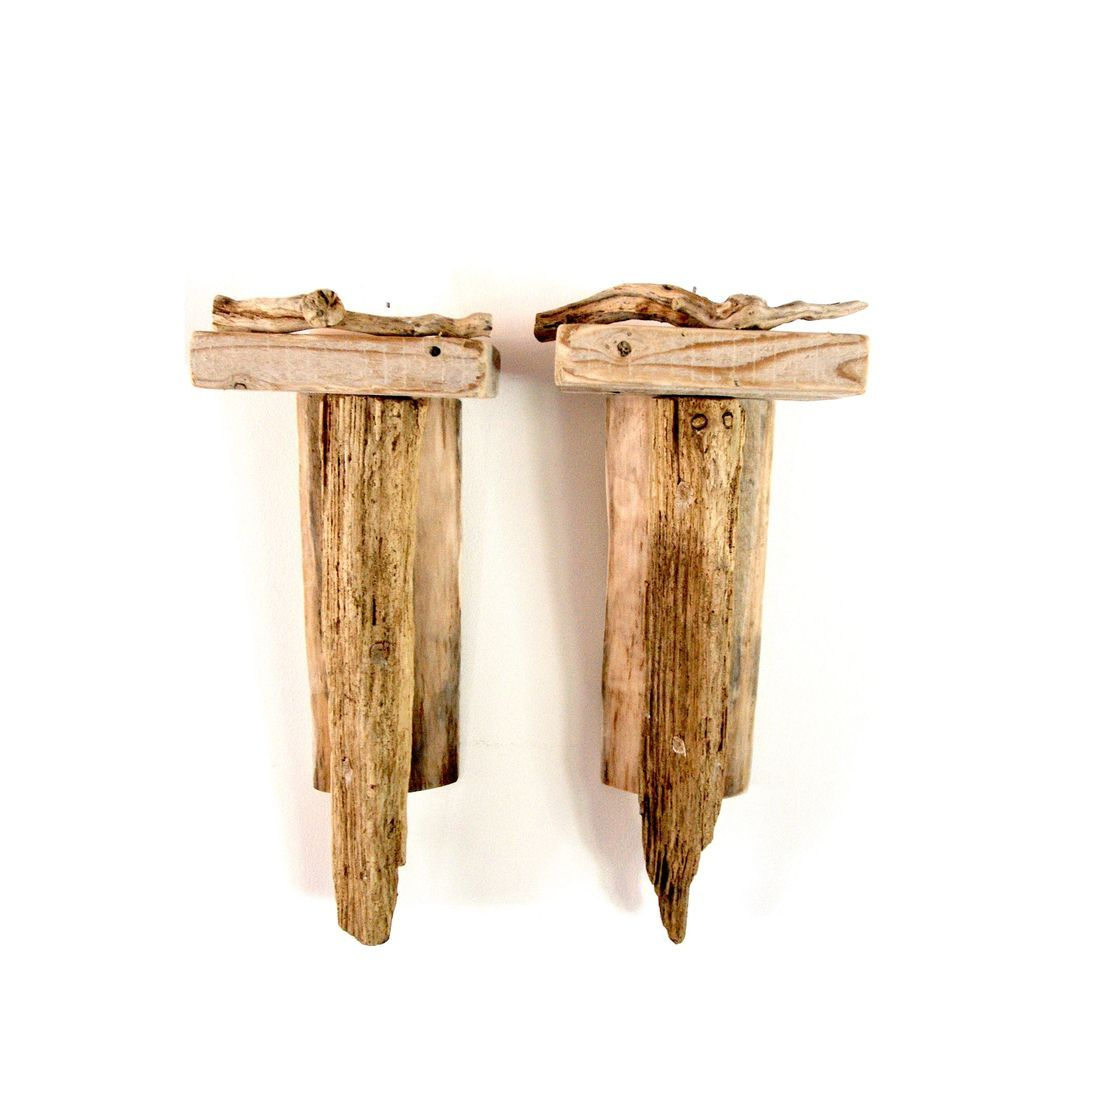 Driftwood Sconce pair 5